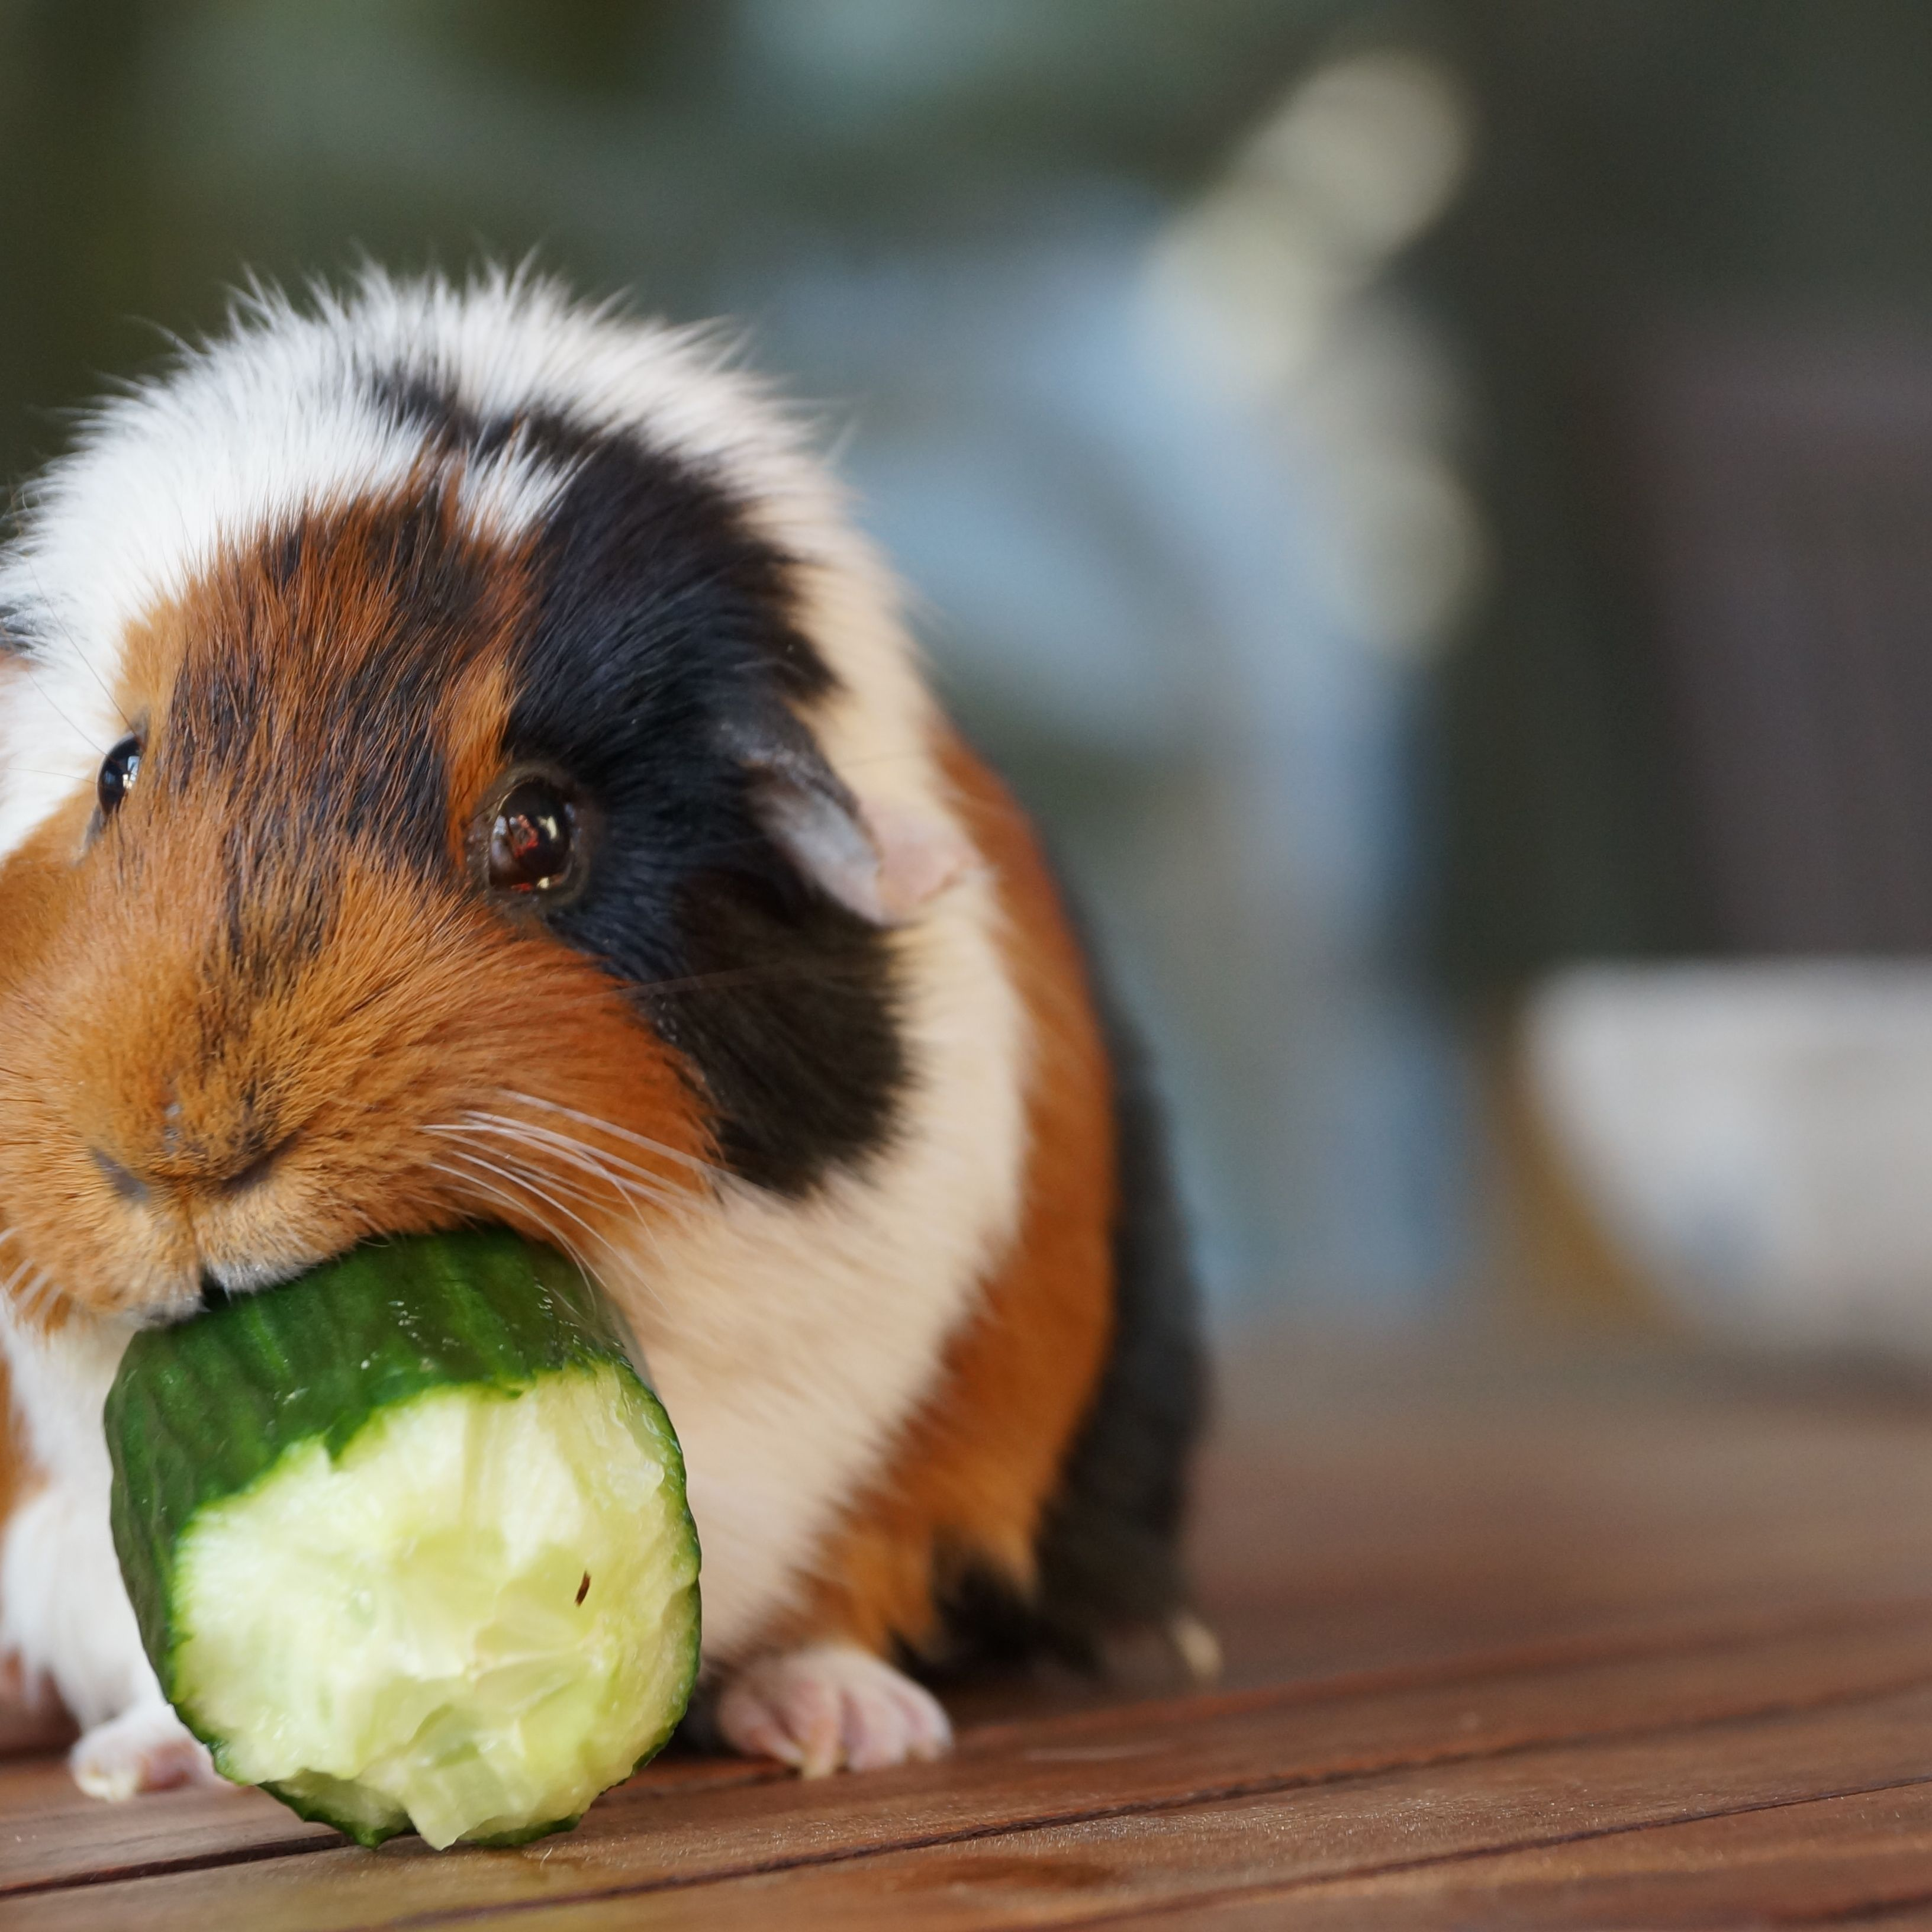 The 9 Best Basic Guinea Pig Supplies of 2019